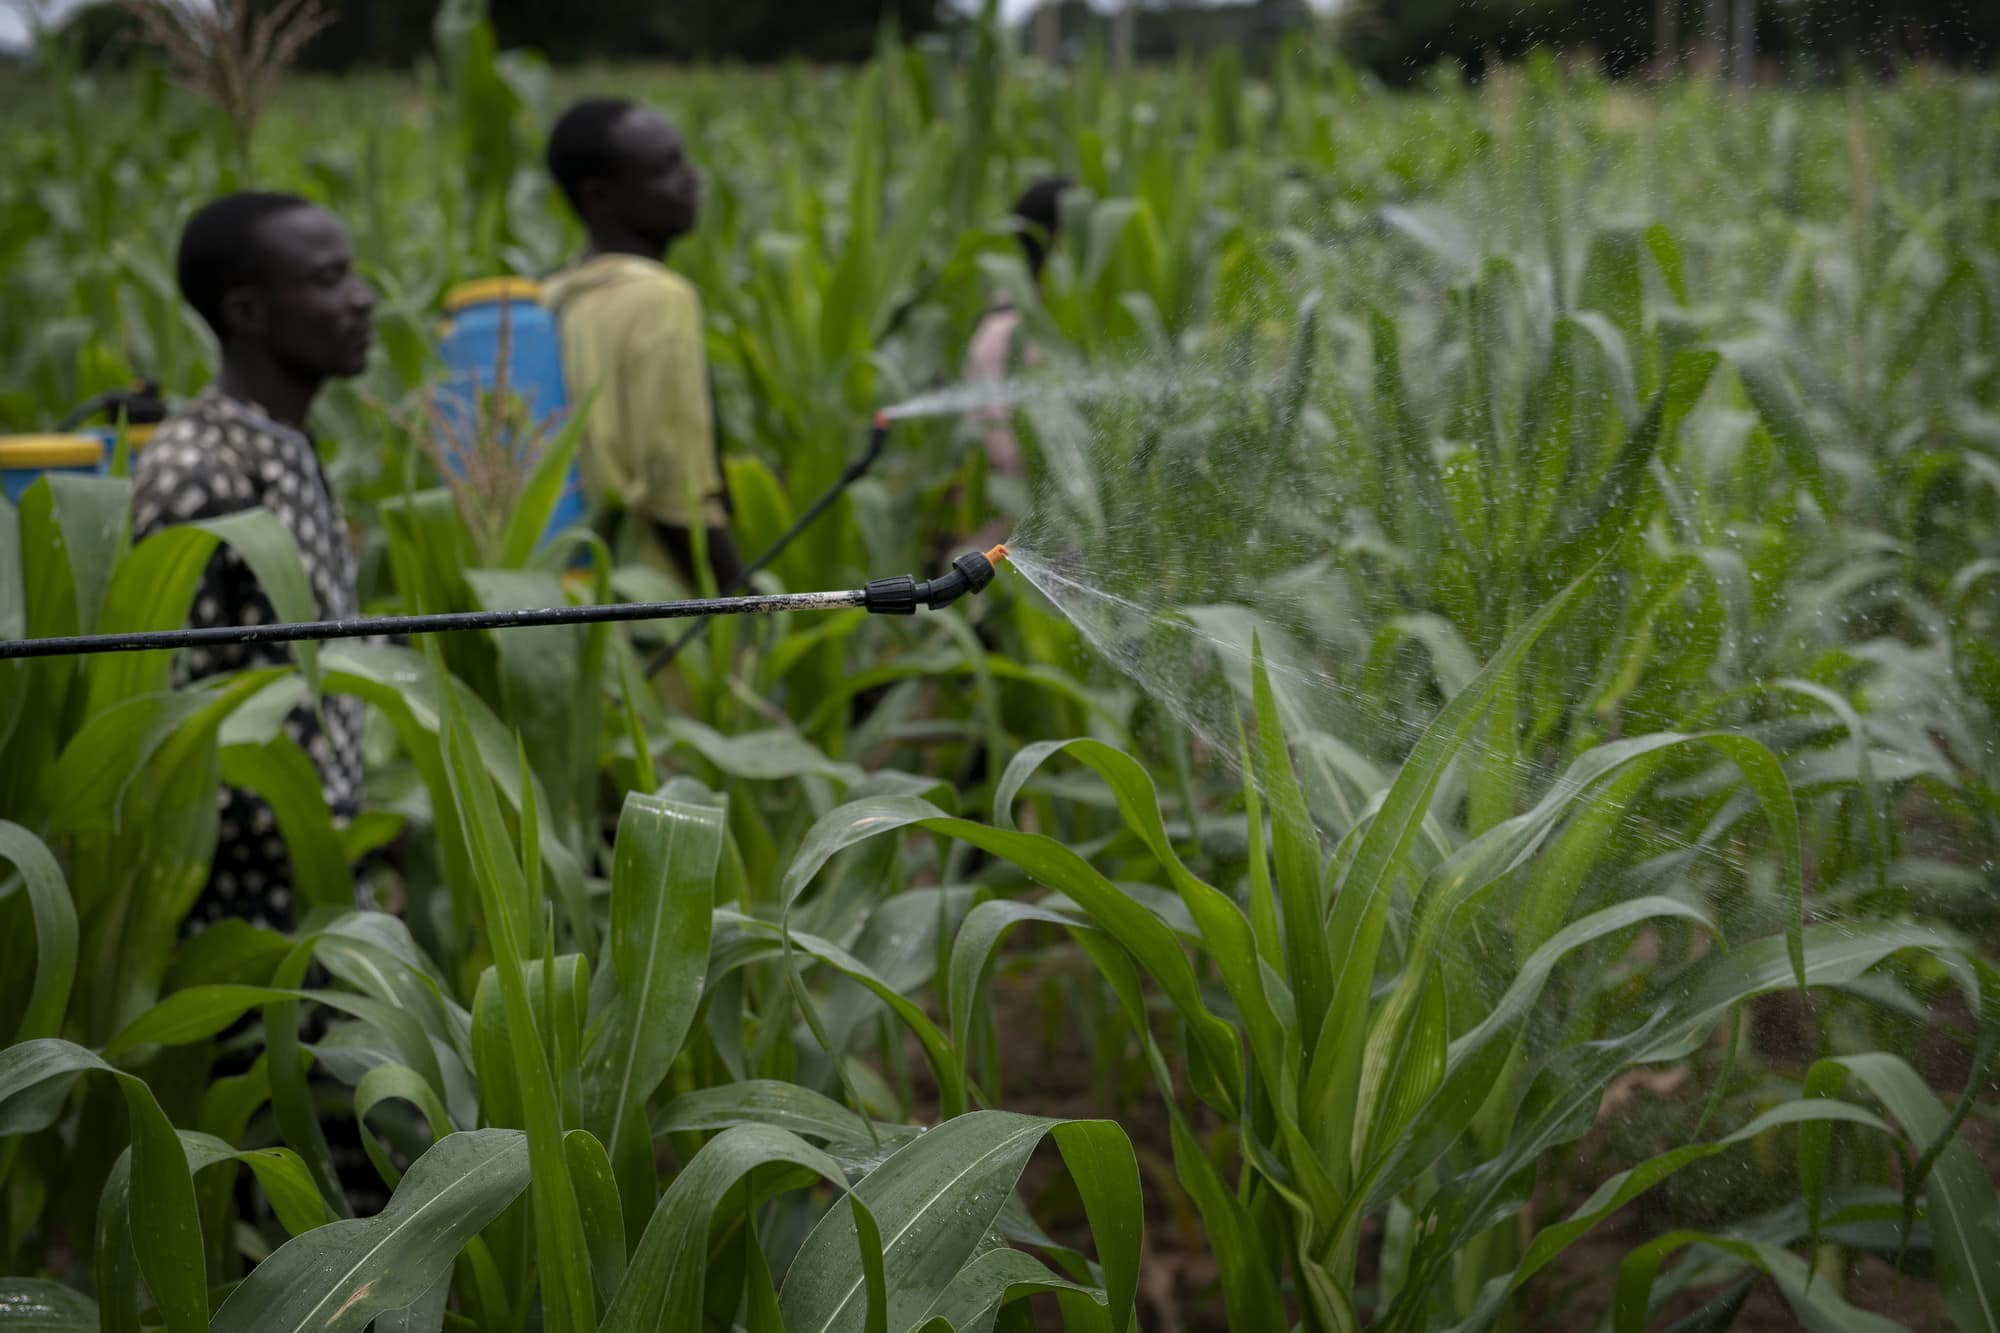 Plant Health and Rapid Response to Protect Food Security and Livelihoods